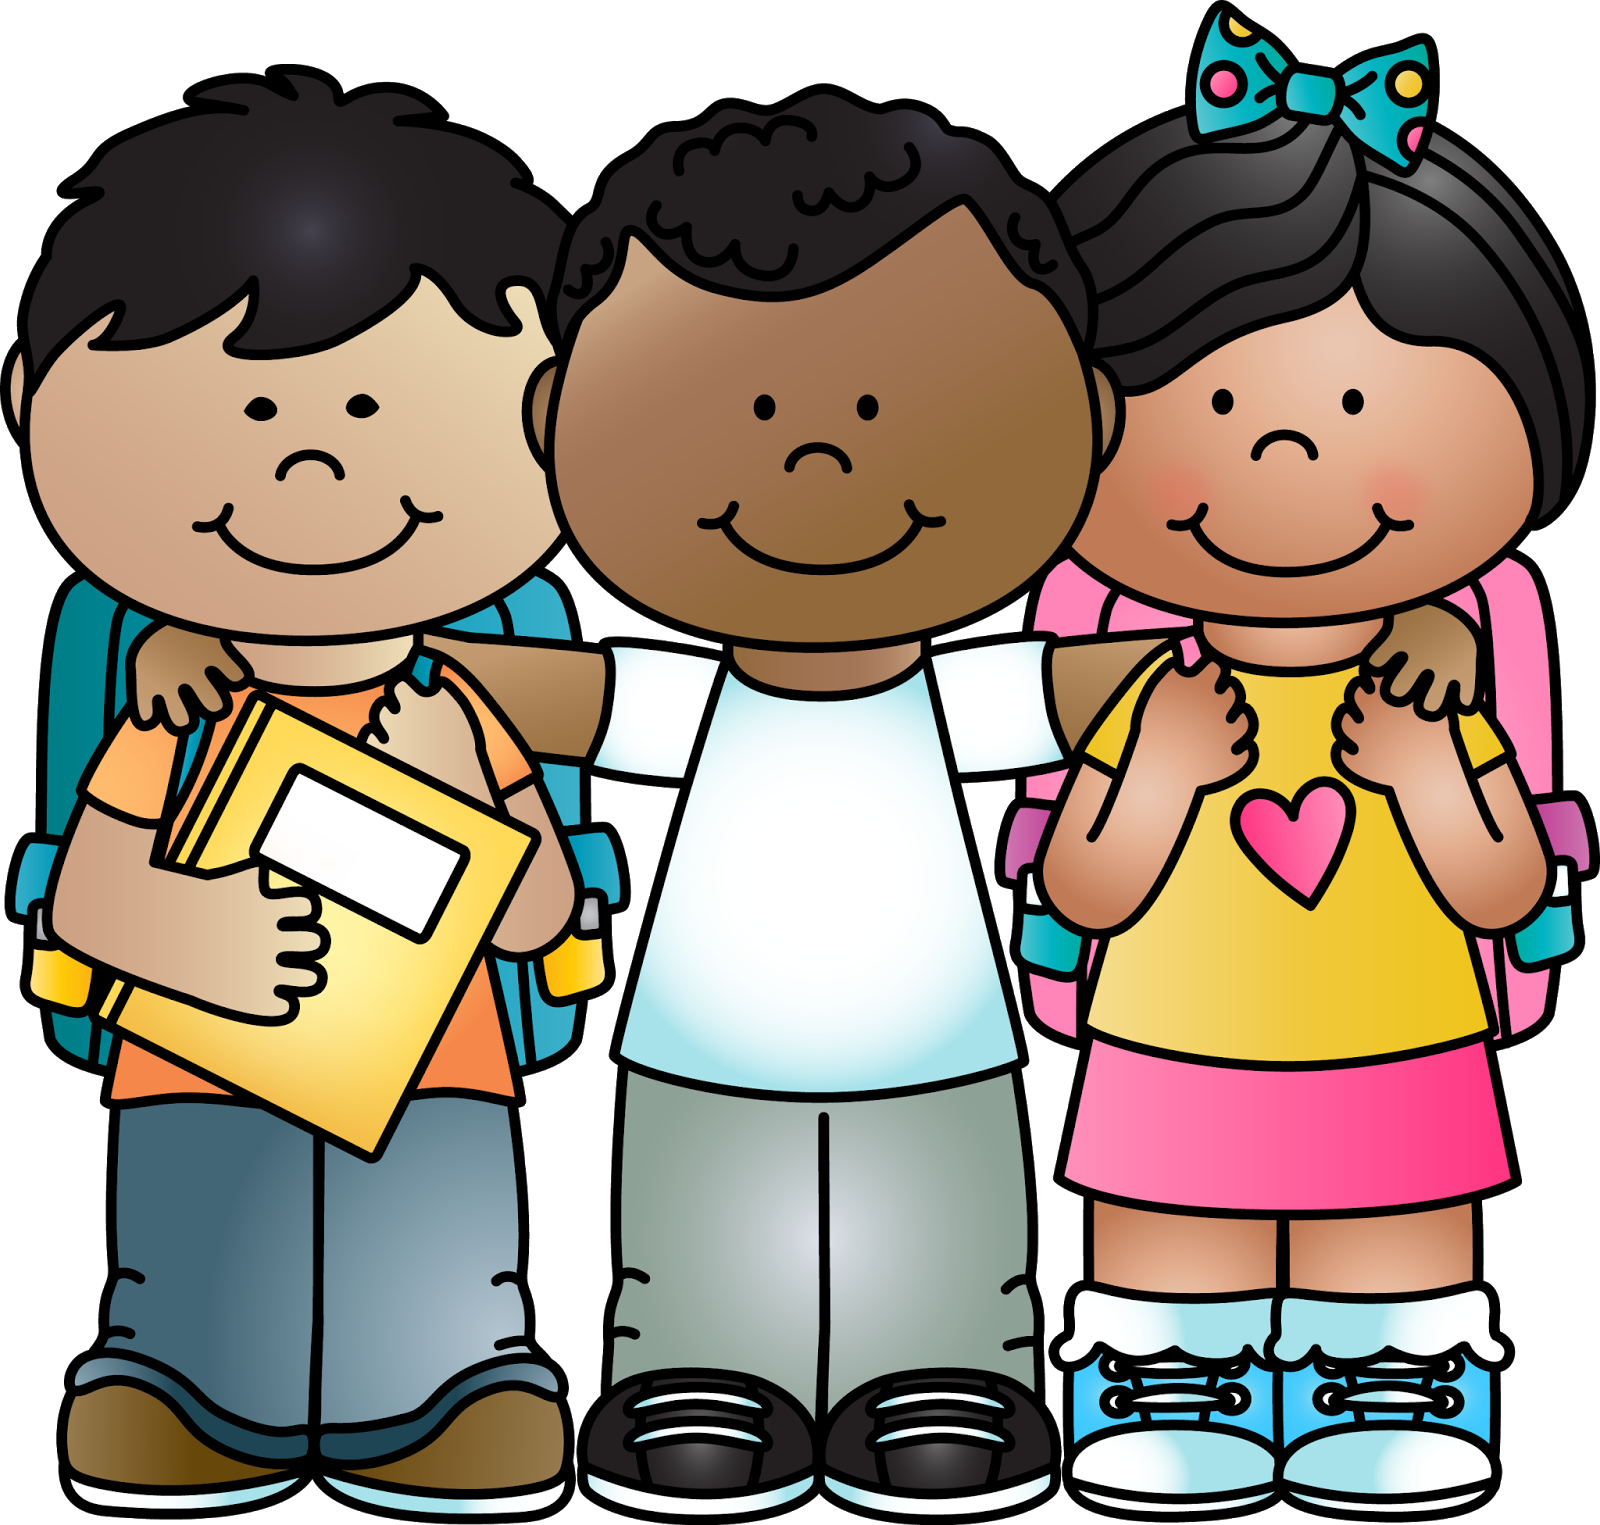 Free clipart of school kids graphic transparent library REGISTER NOW FOR 2017-2018 CLASSES! graphic transparent library